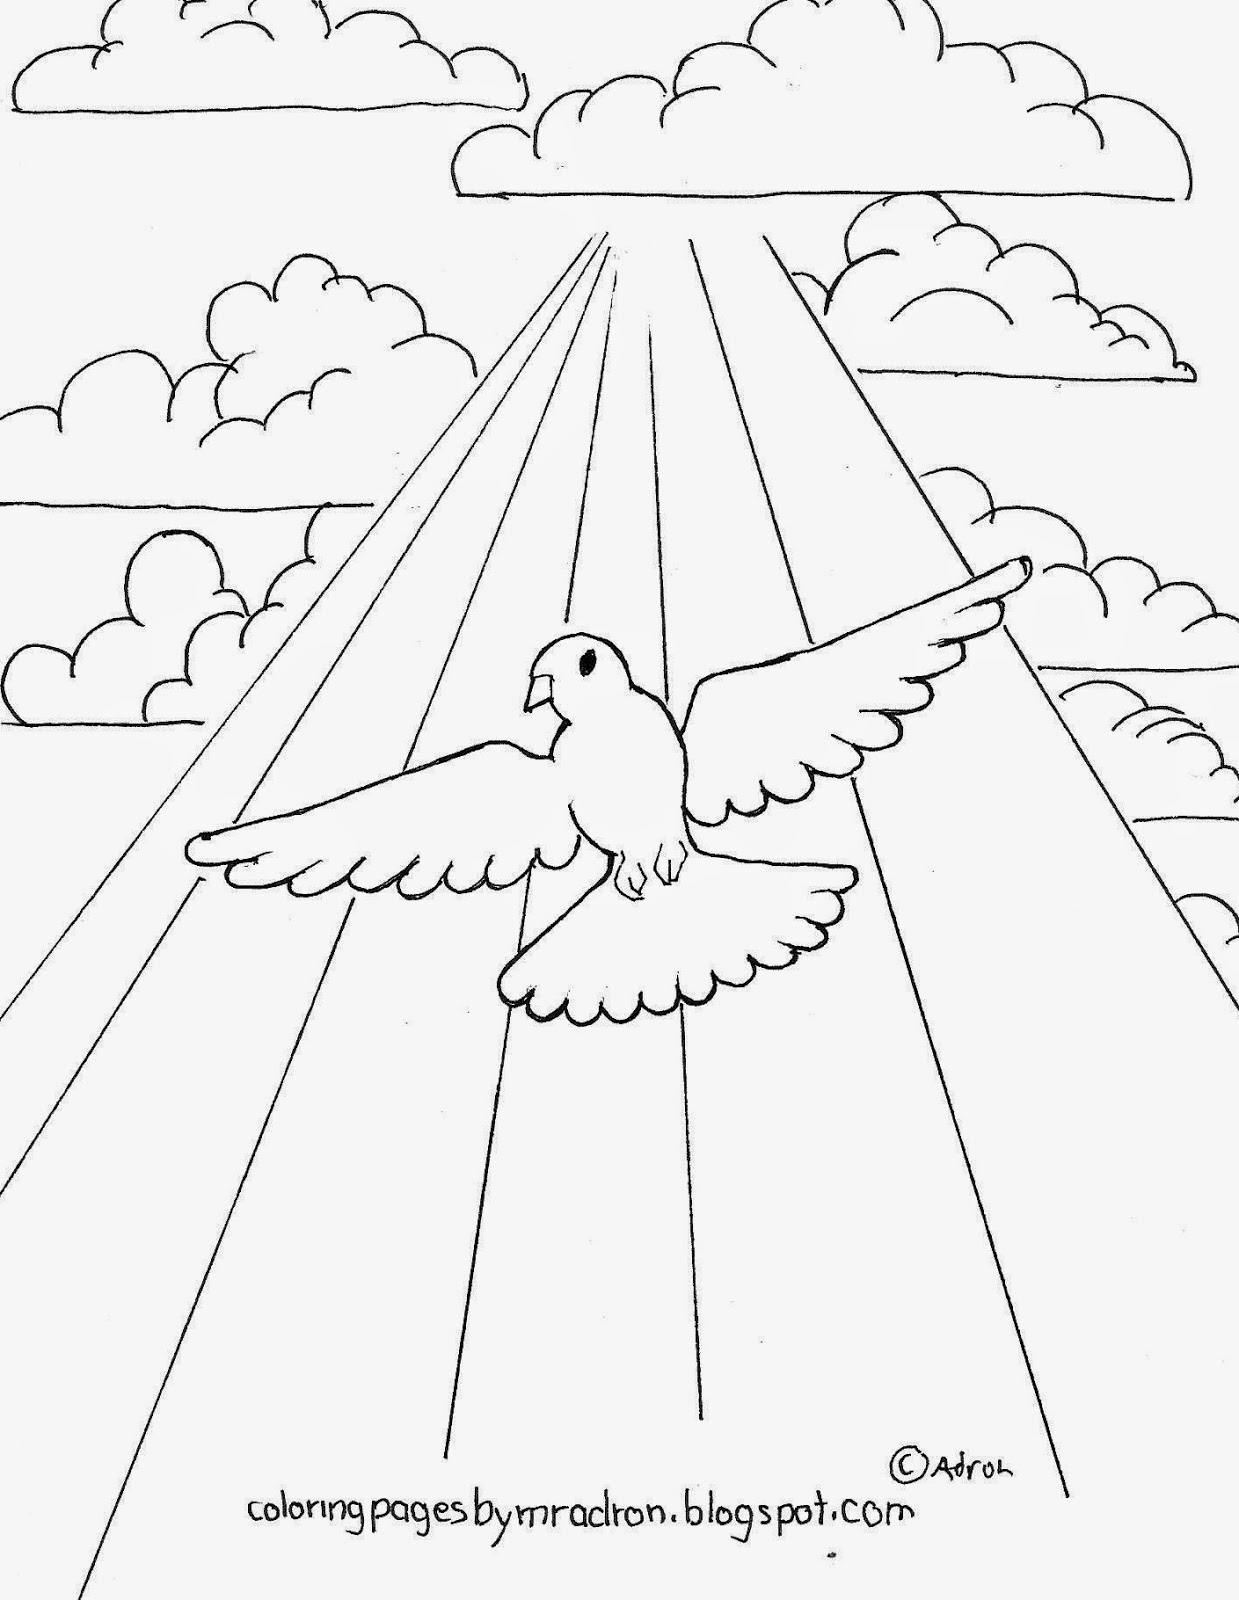 Daily Devotional Day 337 likewise Even Small Church Can Have Relatively together with Dove Of Peace Coloring Page Free And further Sward Clipart as well Congregational Ministries. on sending church